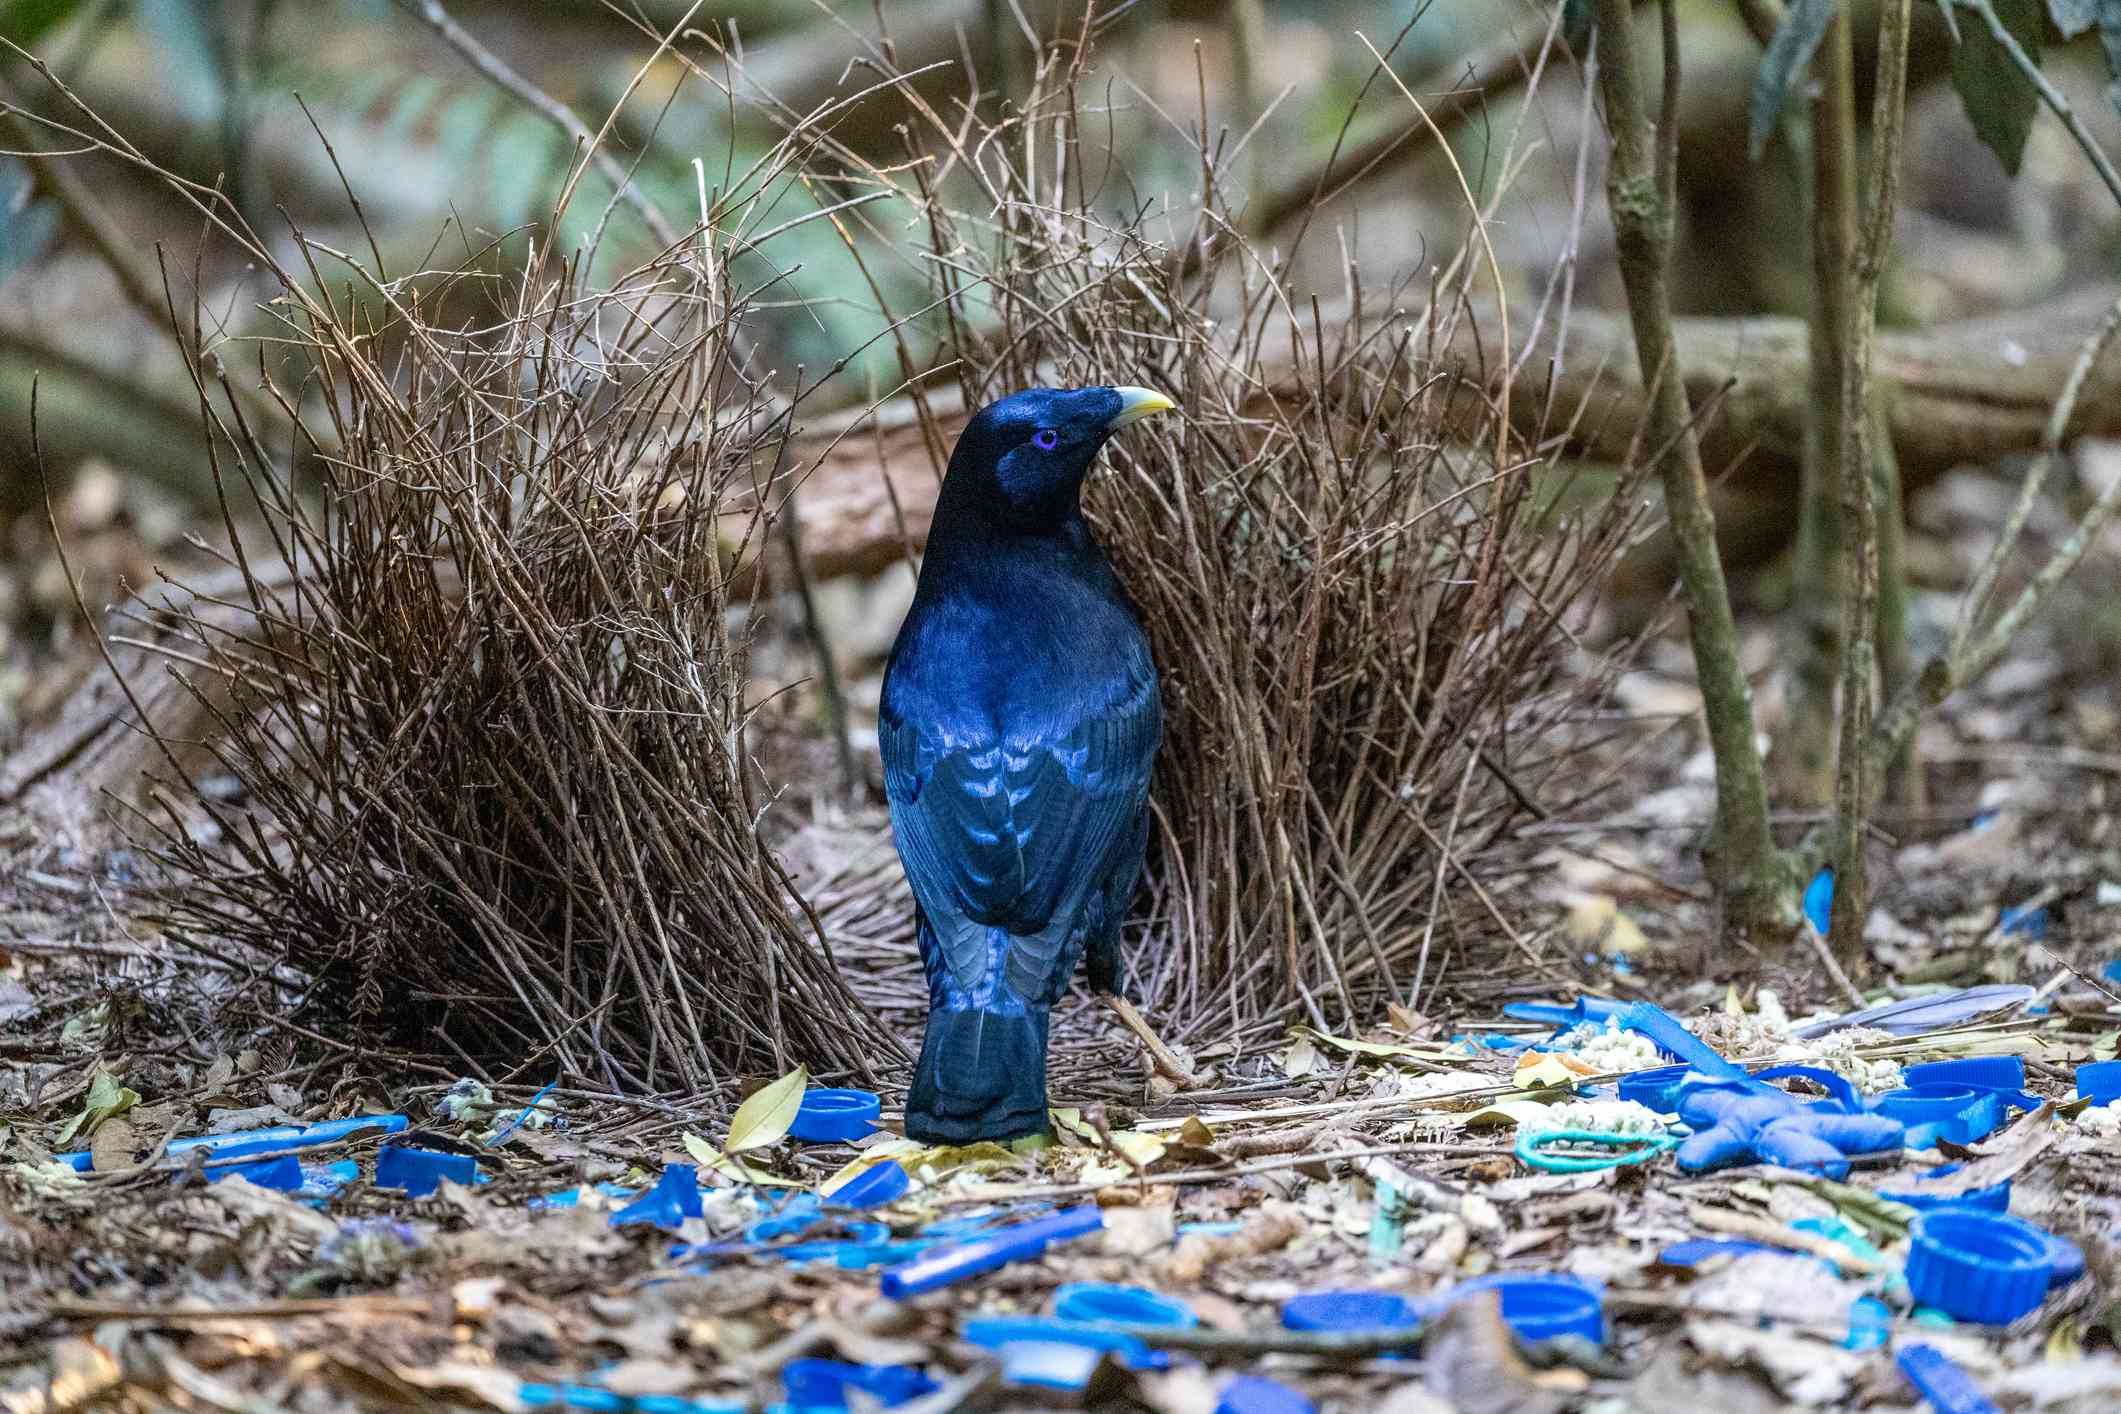 A male satin bowerbird next to his bower decorated with blue pieces of plastic